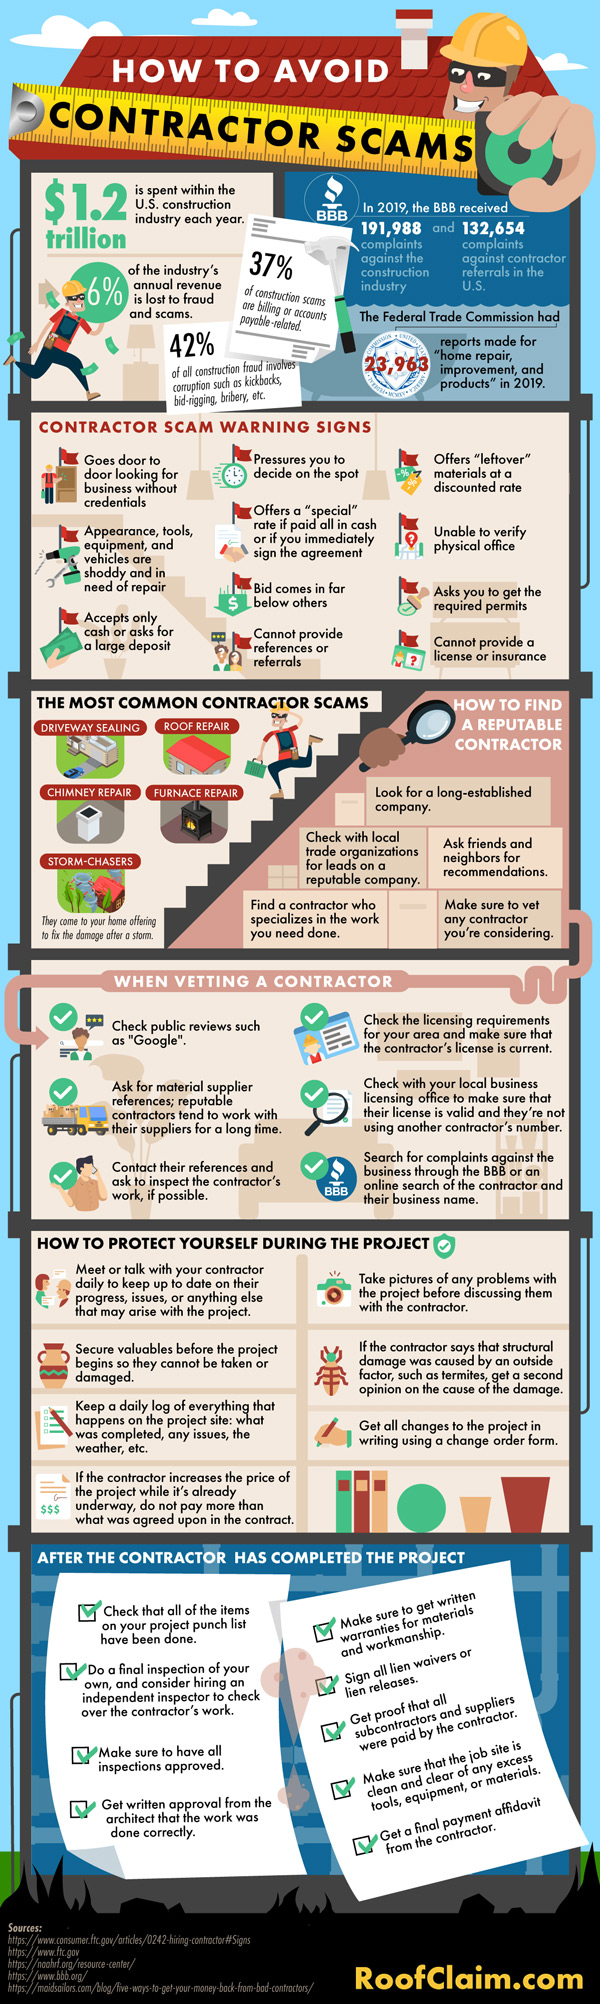 How to Avoid Contractor Scams [Infographic]